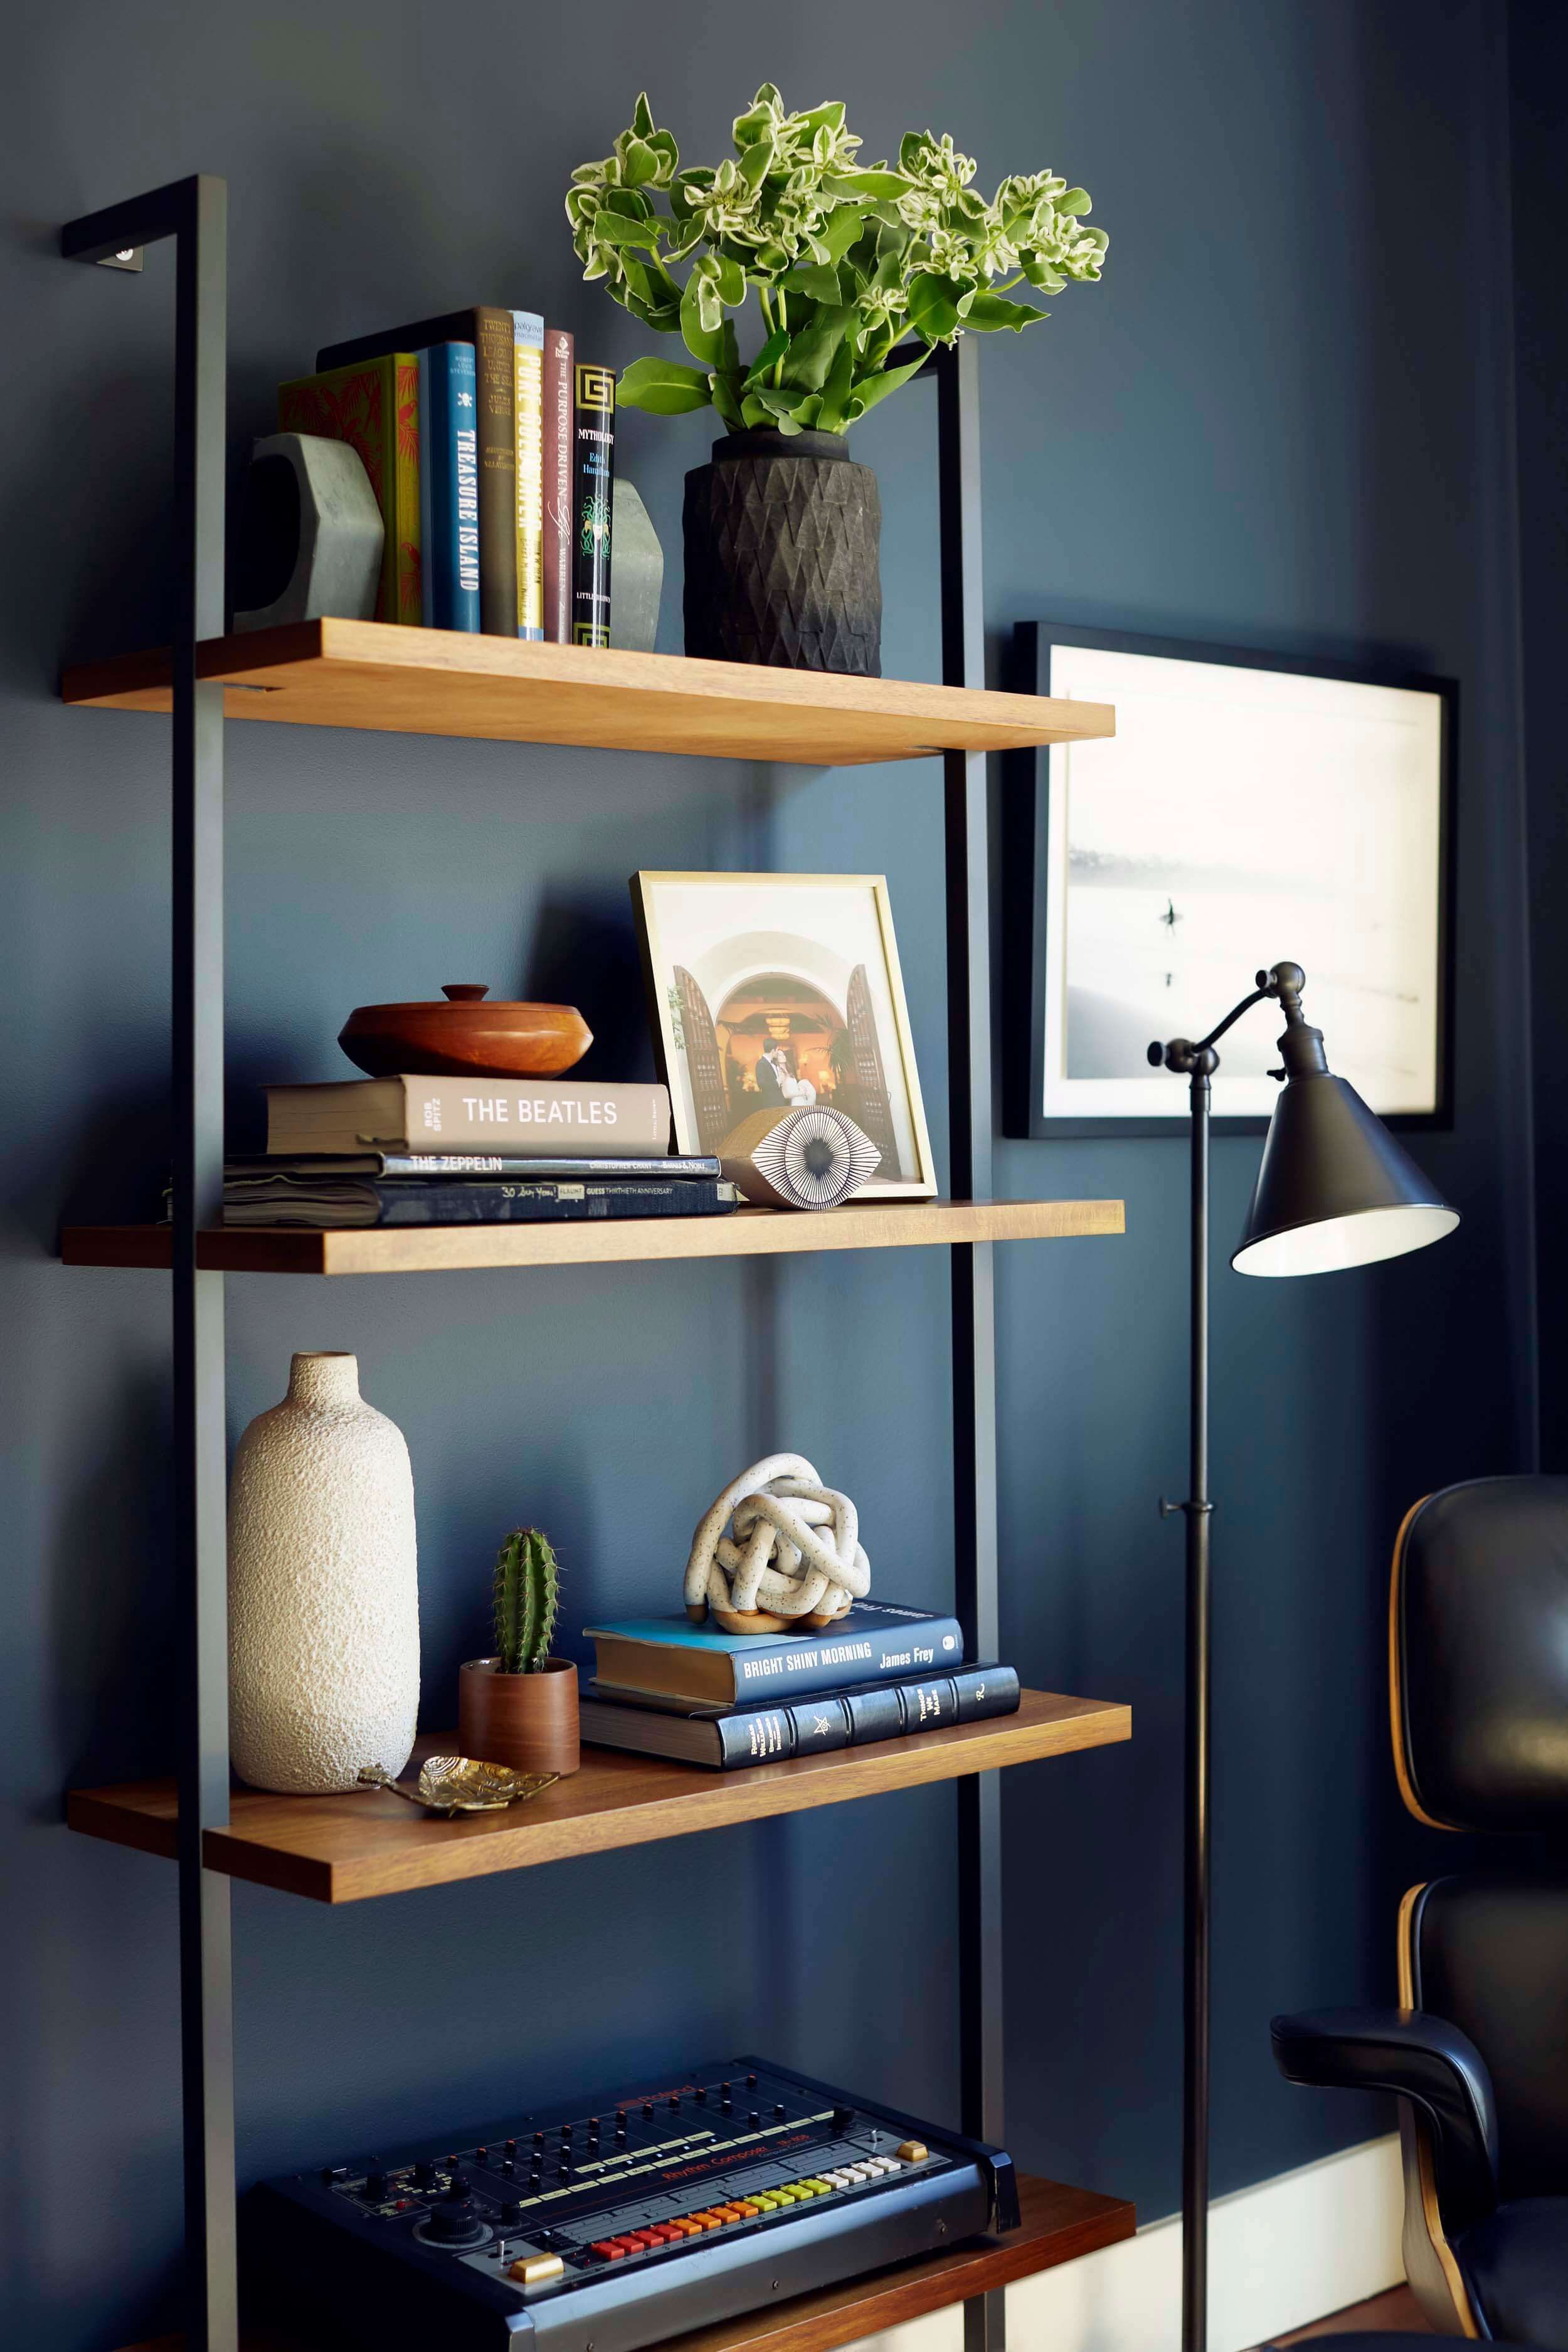 meeting room 39citizen office39. Office Room Diy Decoration Blue. The Best Projects \\u0026 Ideas And Tutorials: Meeting 39citizen Office39